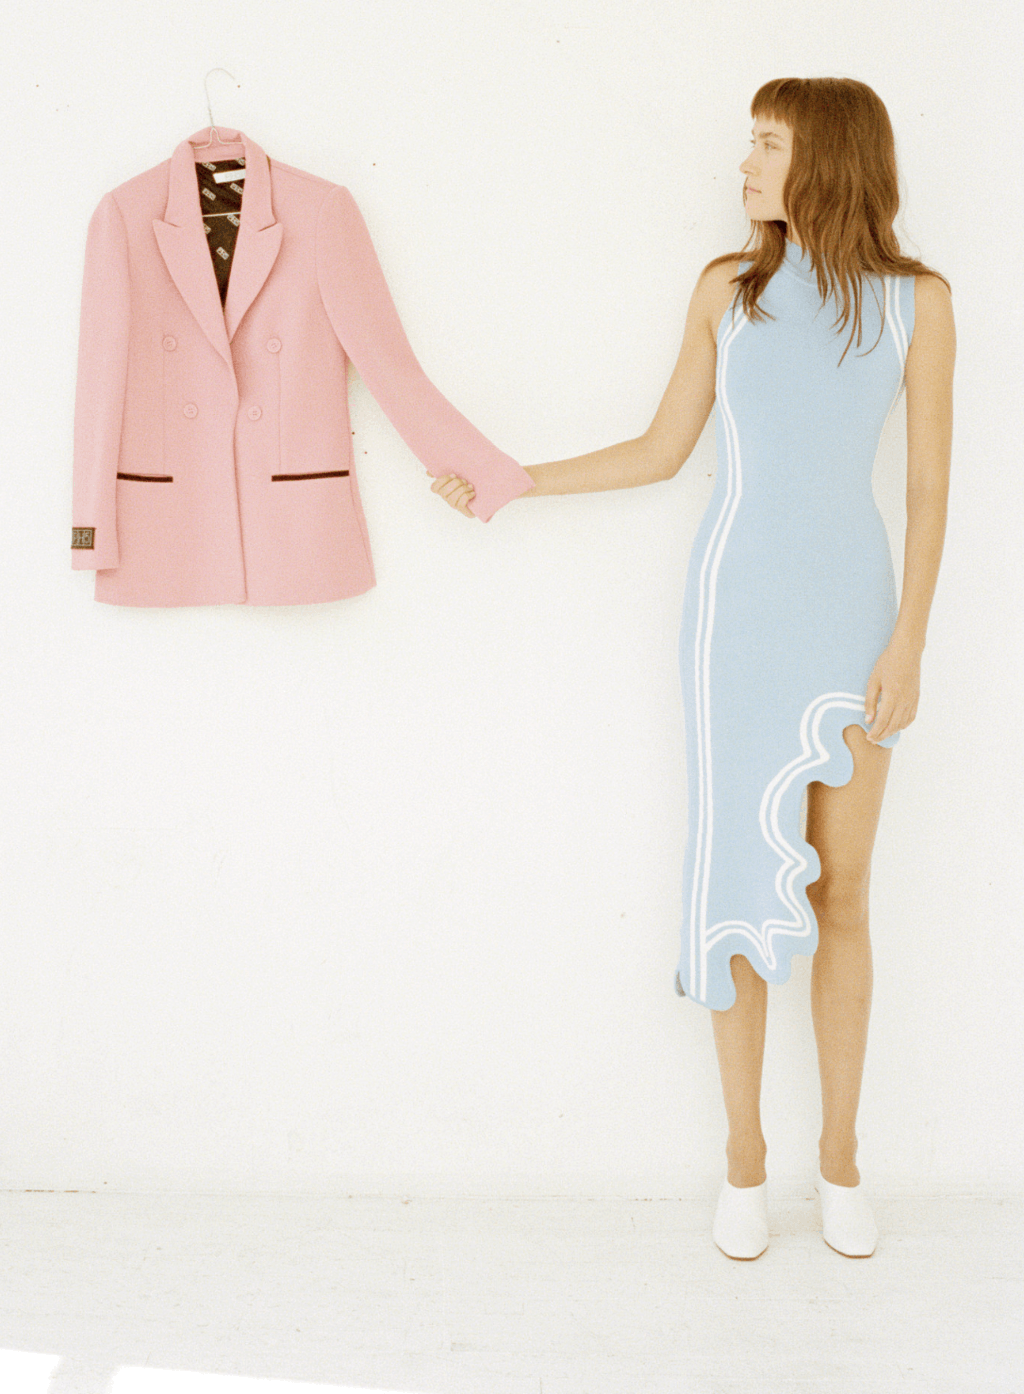 model in baby blue dress holding the sleeve of a pink blazer